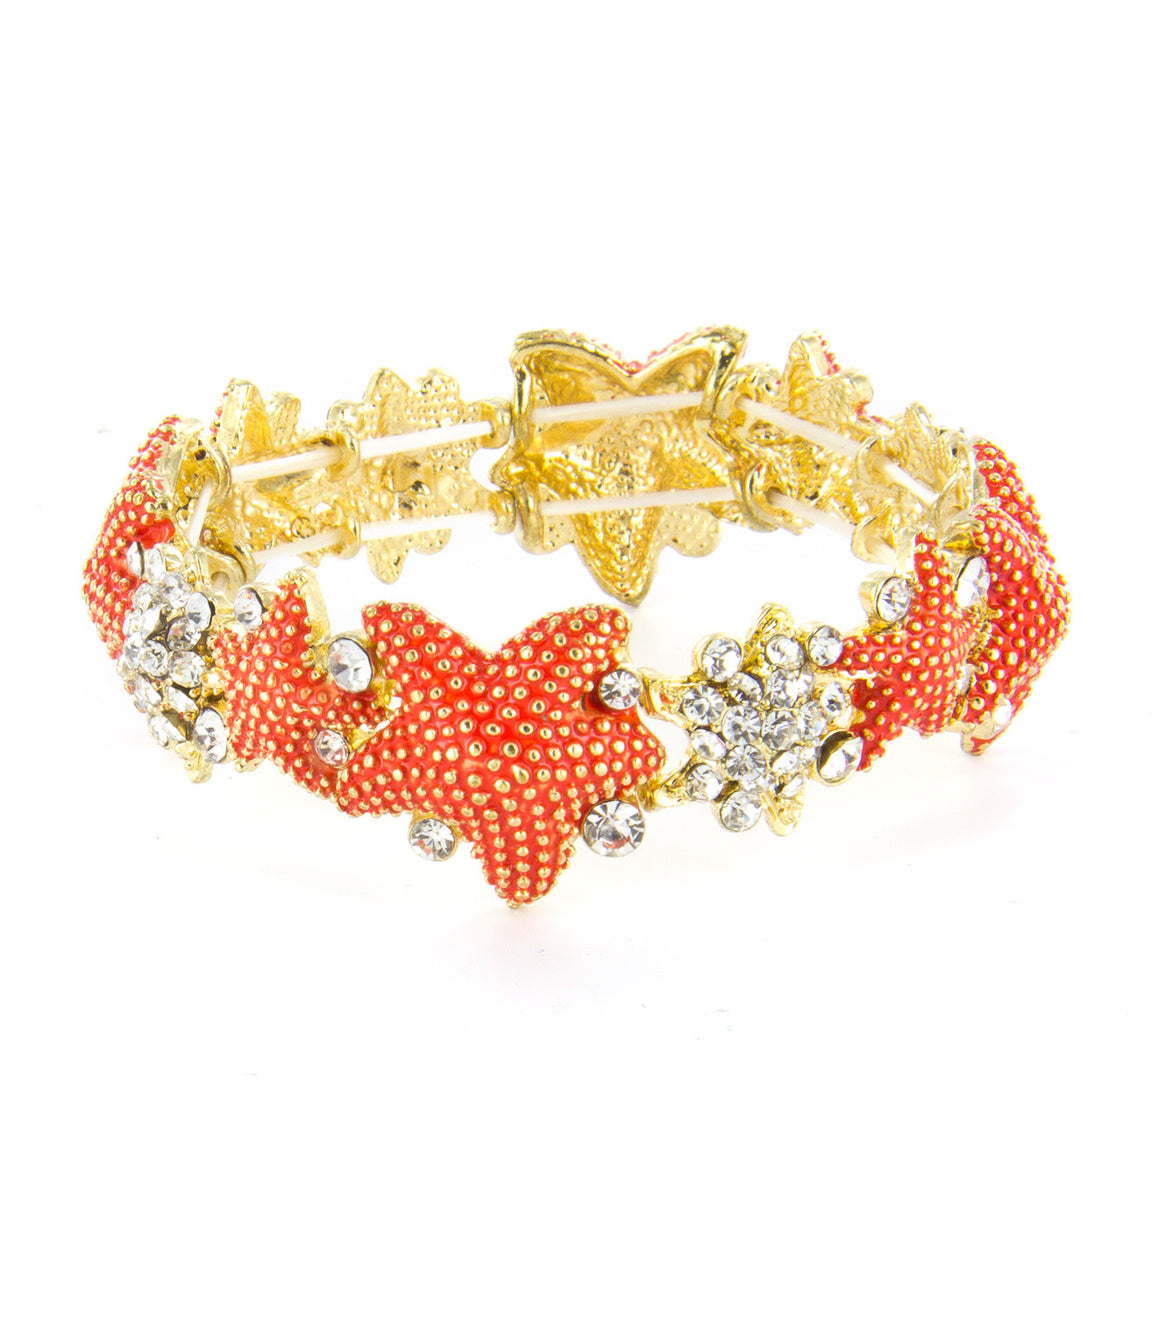 Sealife inspired textured colorful rhinestone stretch bracelet.